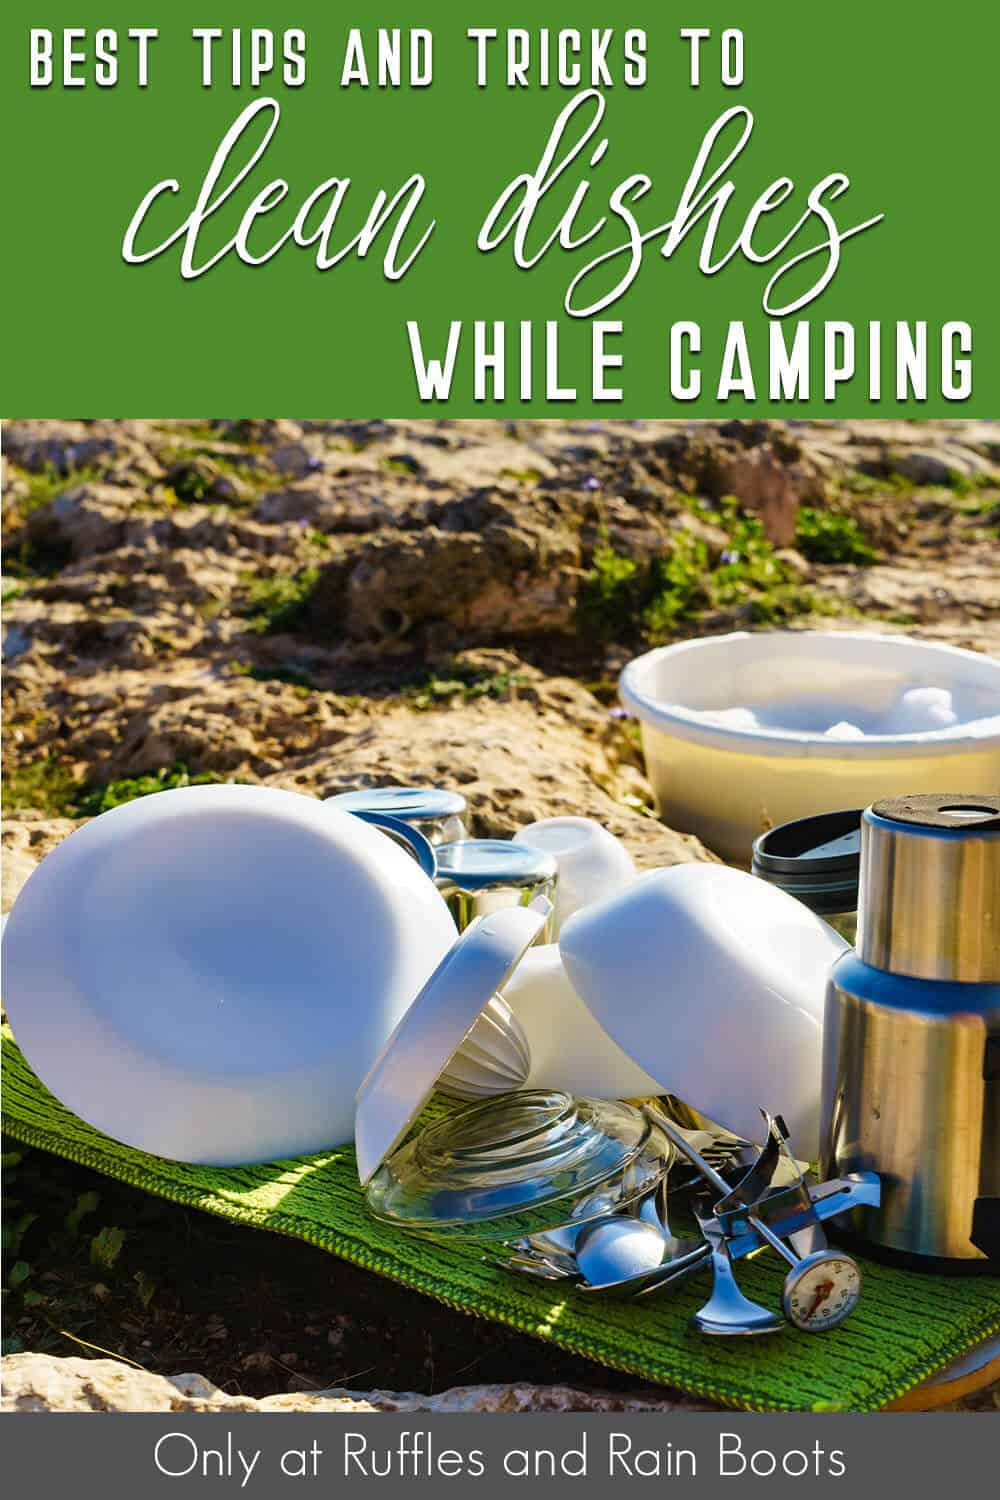 tips to clean when camping with text which reads best tips and tricks to clean dishes while camping